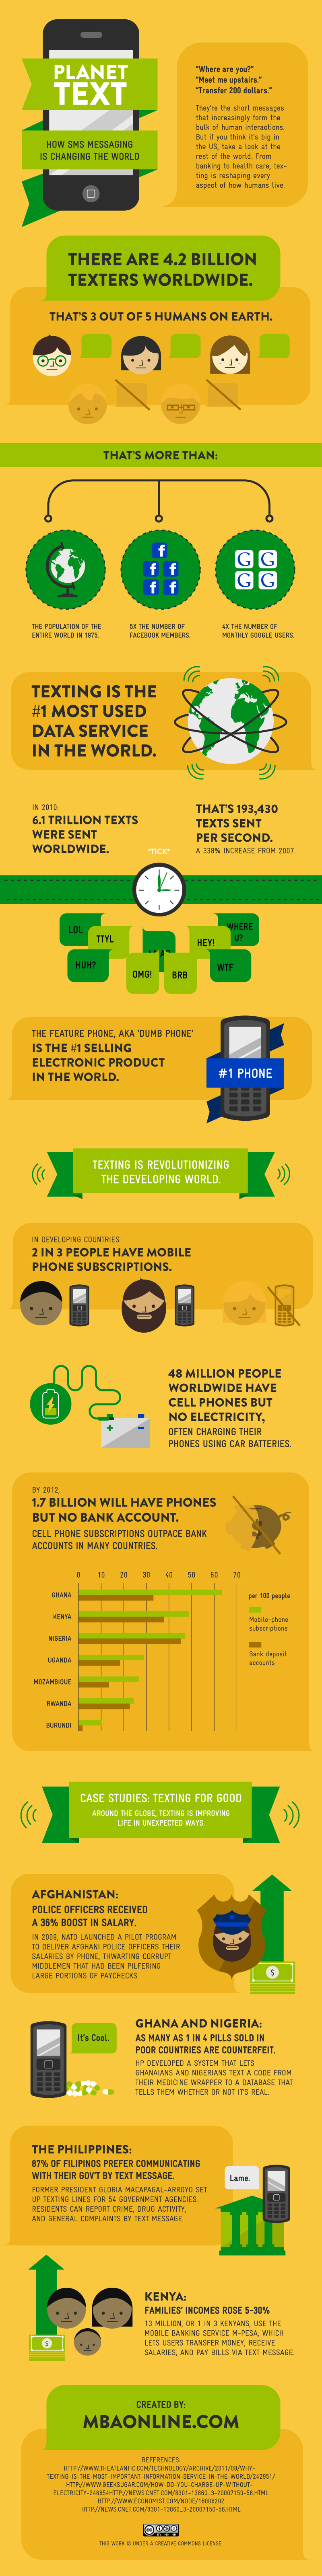 How Texting is affecting the World